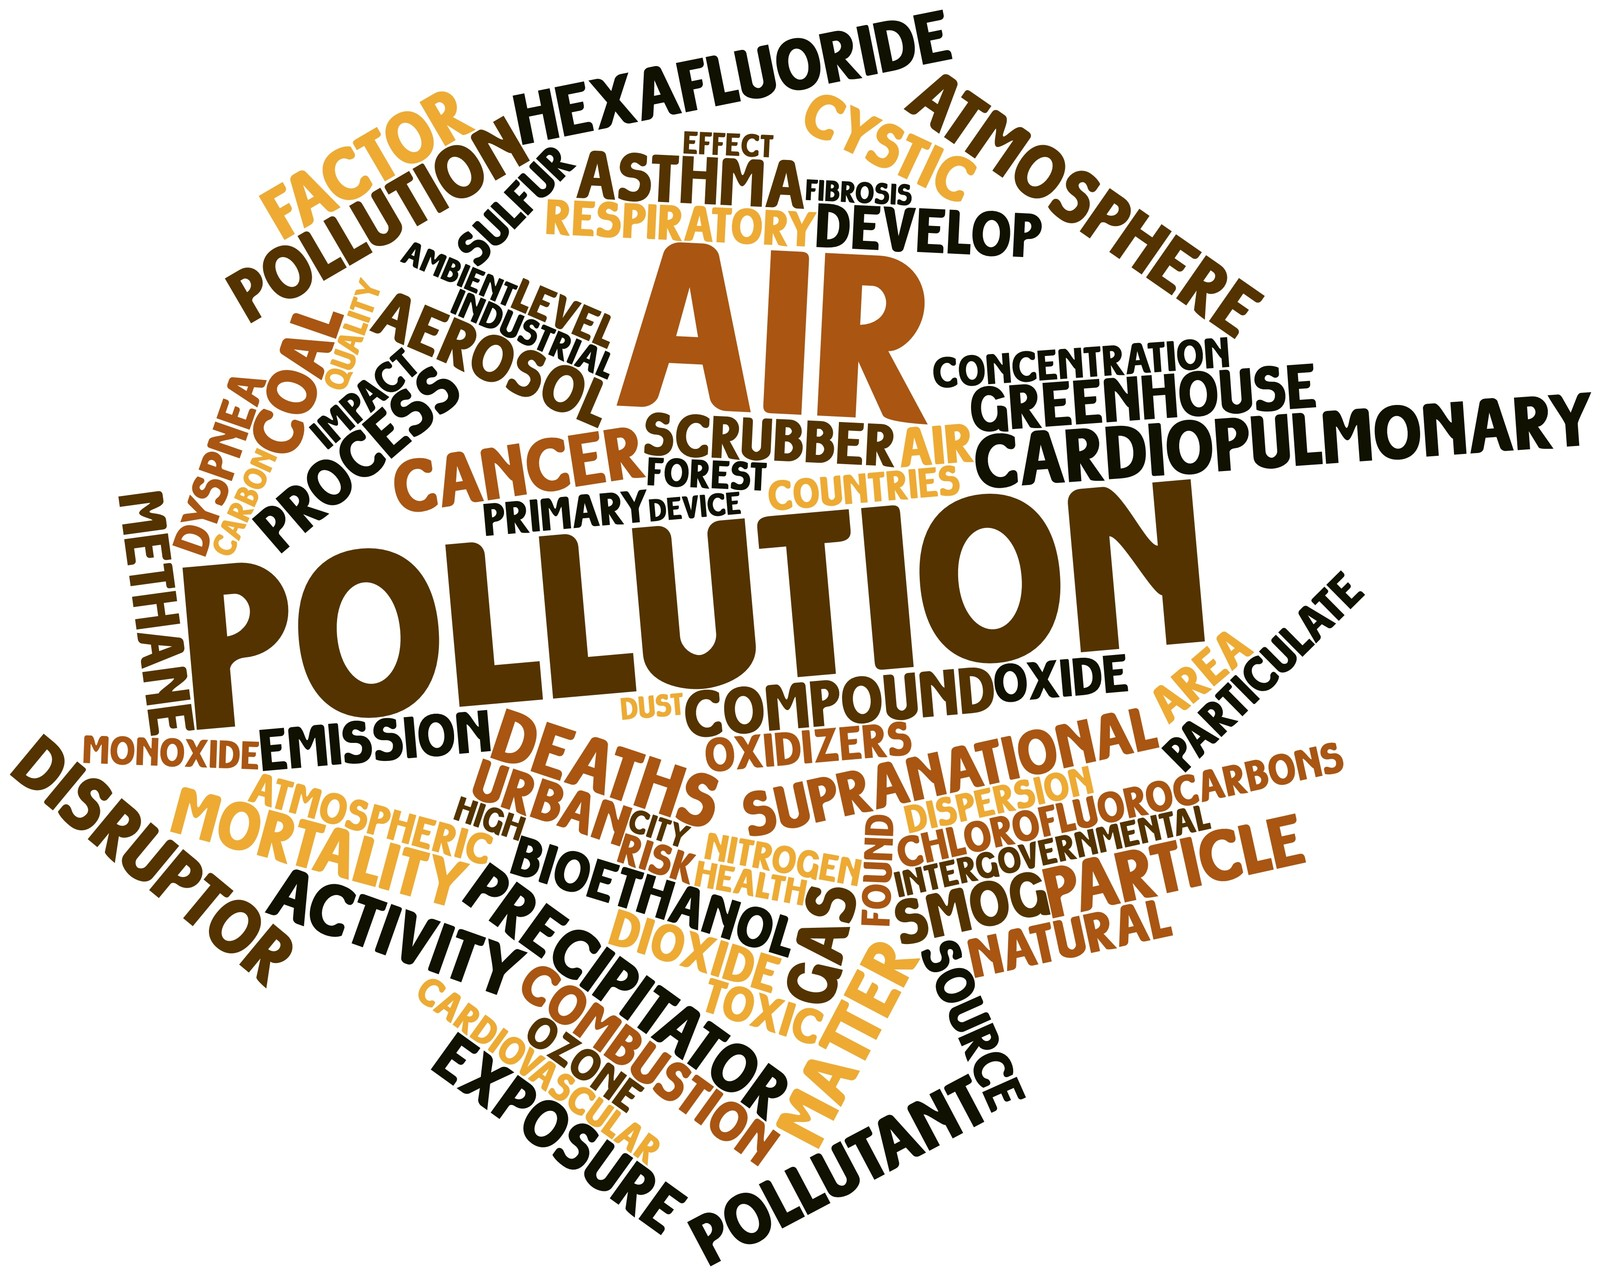 Can Pollutants in the Environment Disrupt Immune Function?